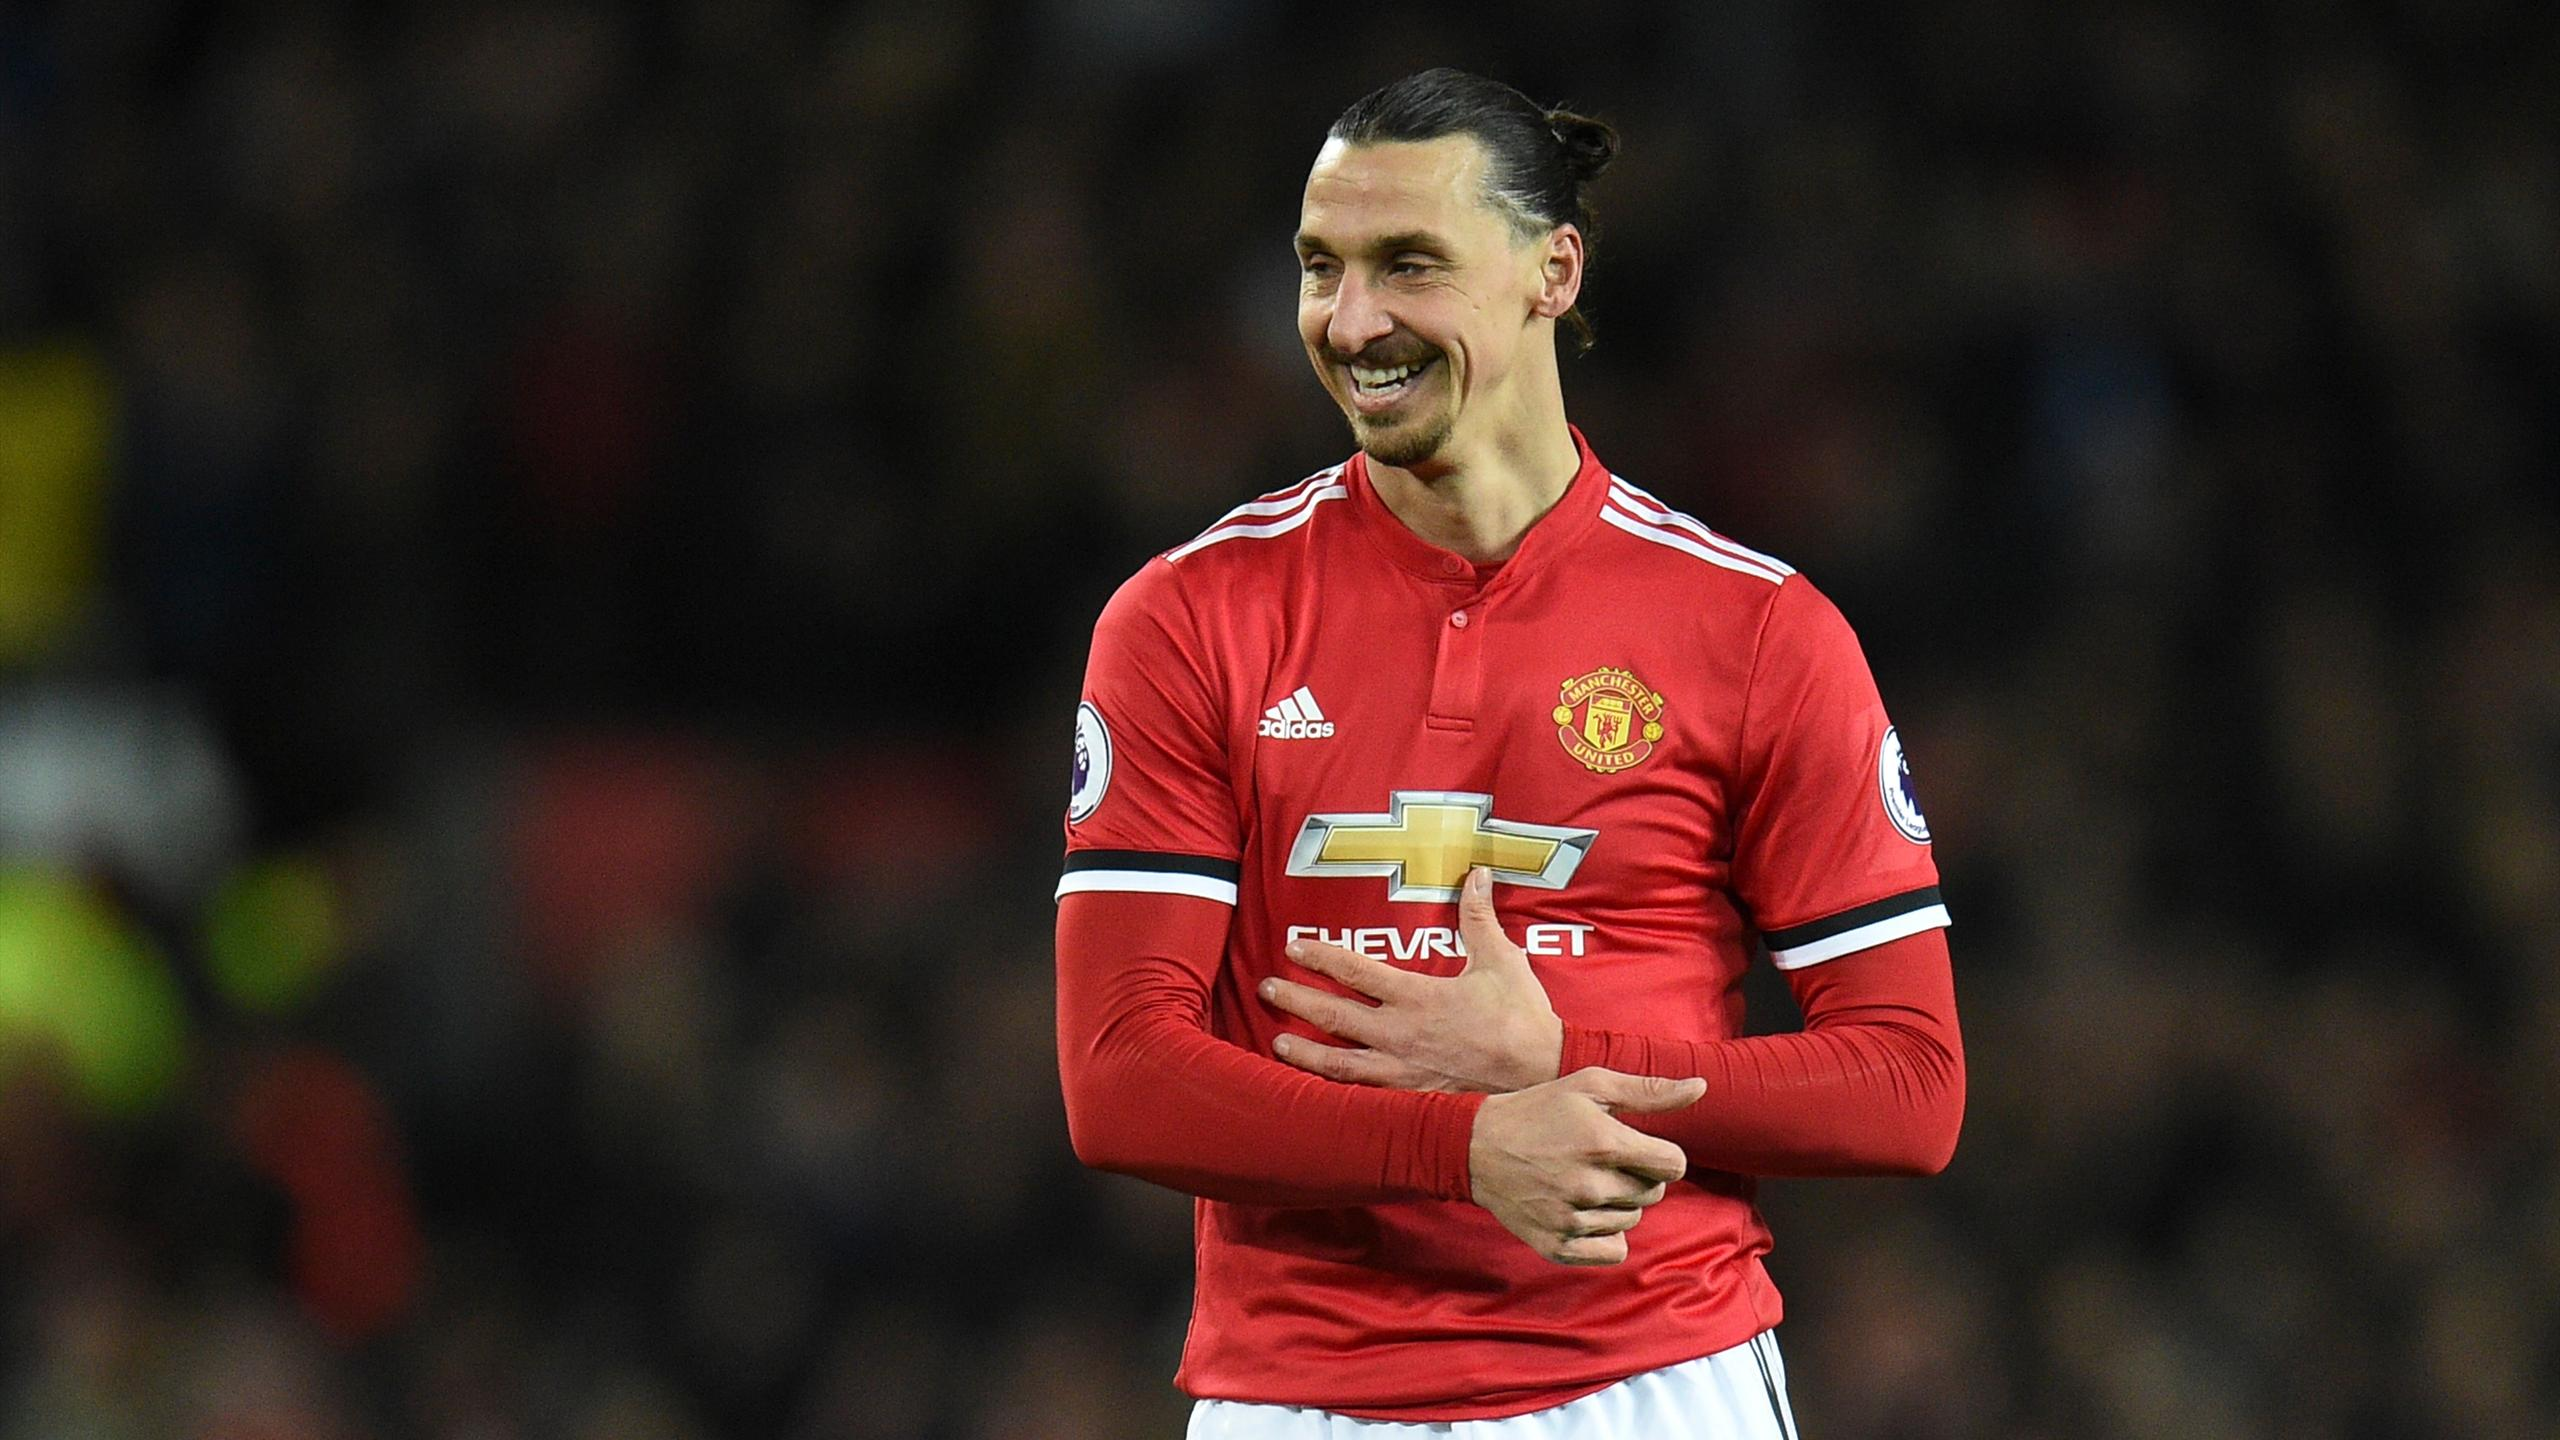 Zlatan Ibrahimovic Player Profile Football Eurosport